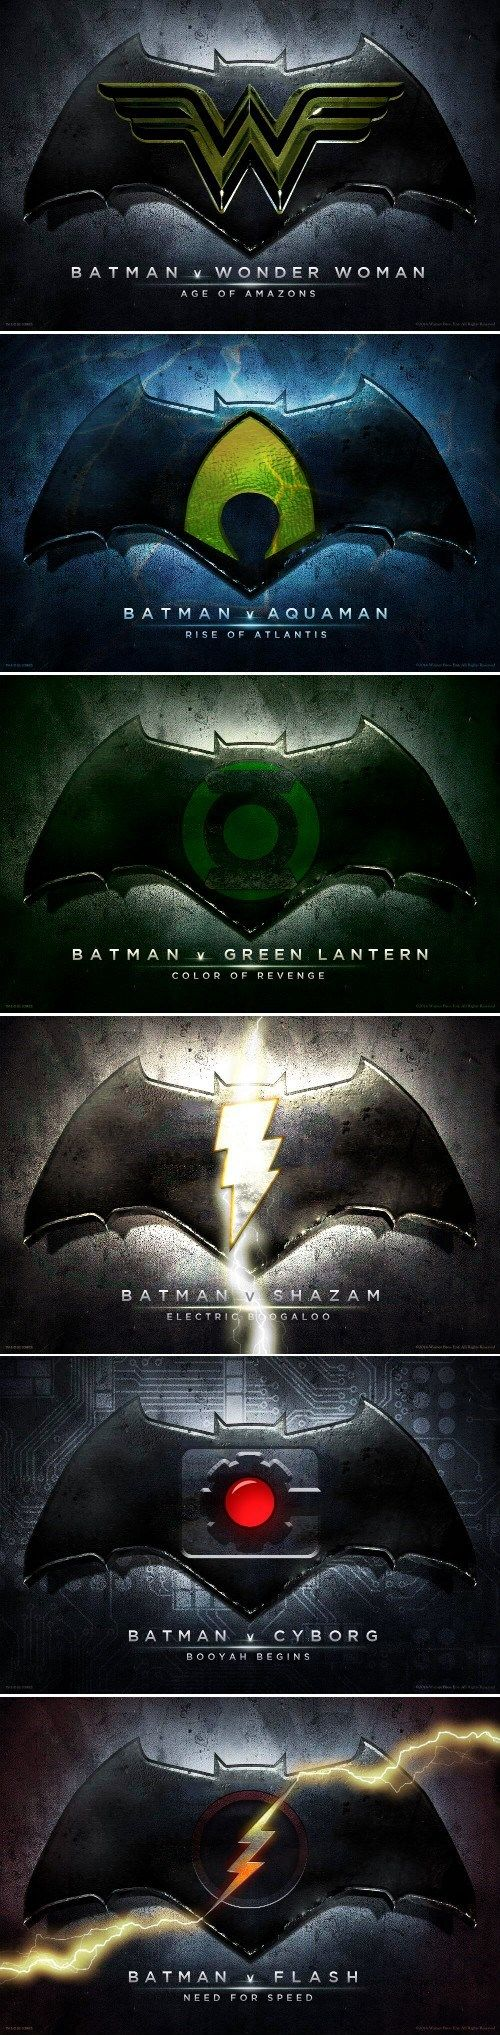 Lol, I like this one but it's trueWV won't make a DC movie without the Dark Knight.